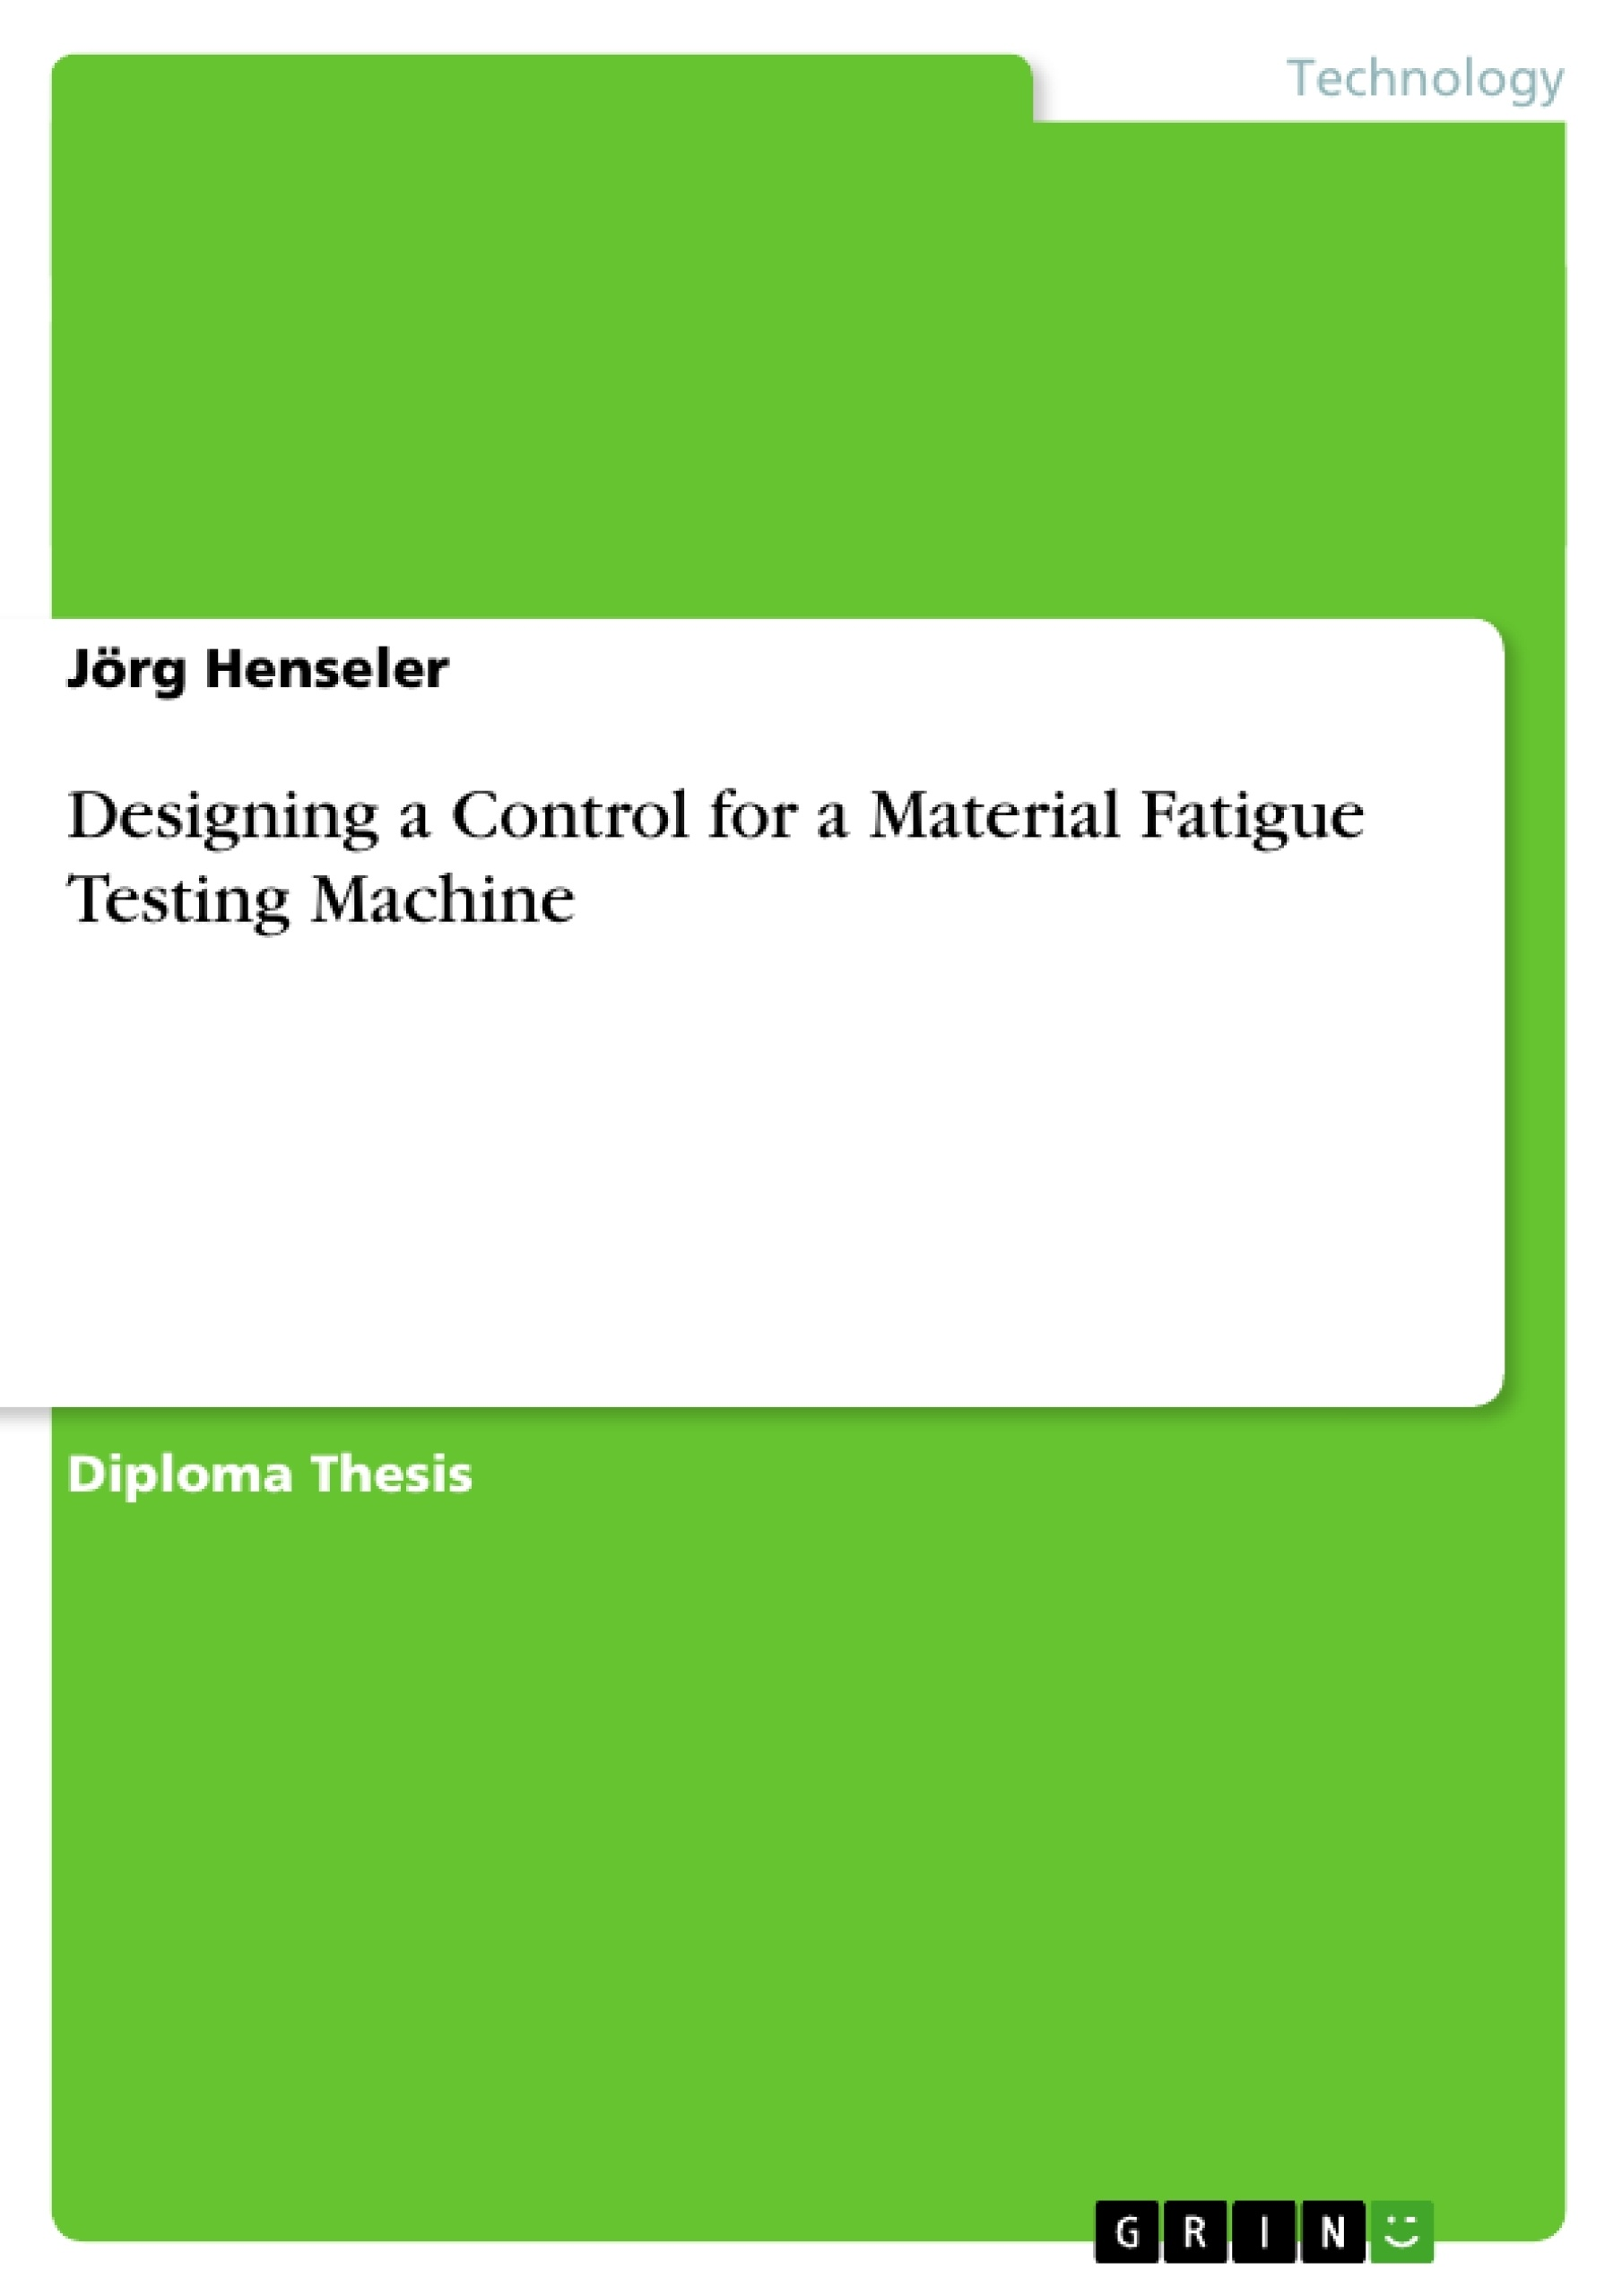 Title: Designing a Control for a Material Fatigue Testing Machine